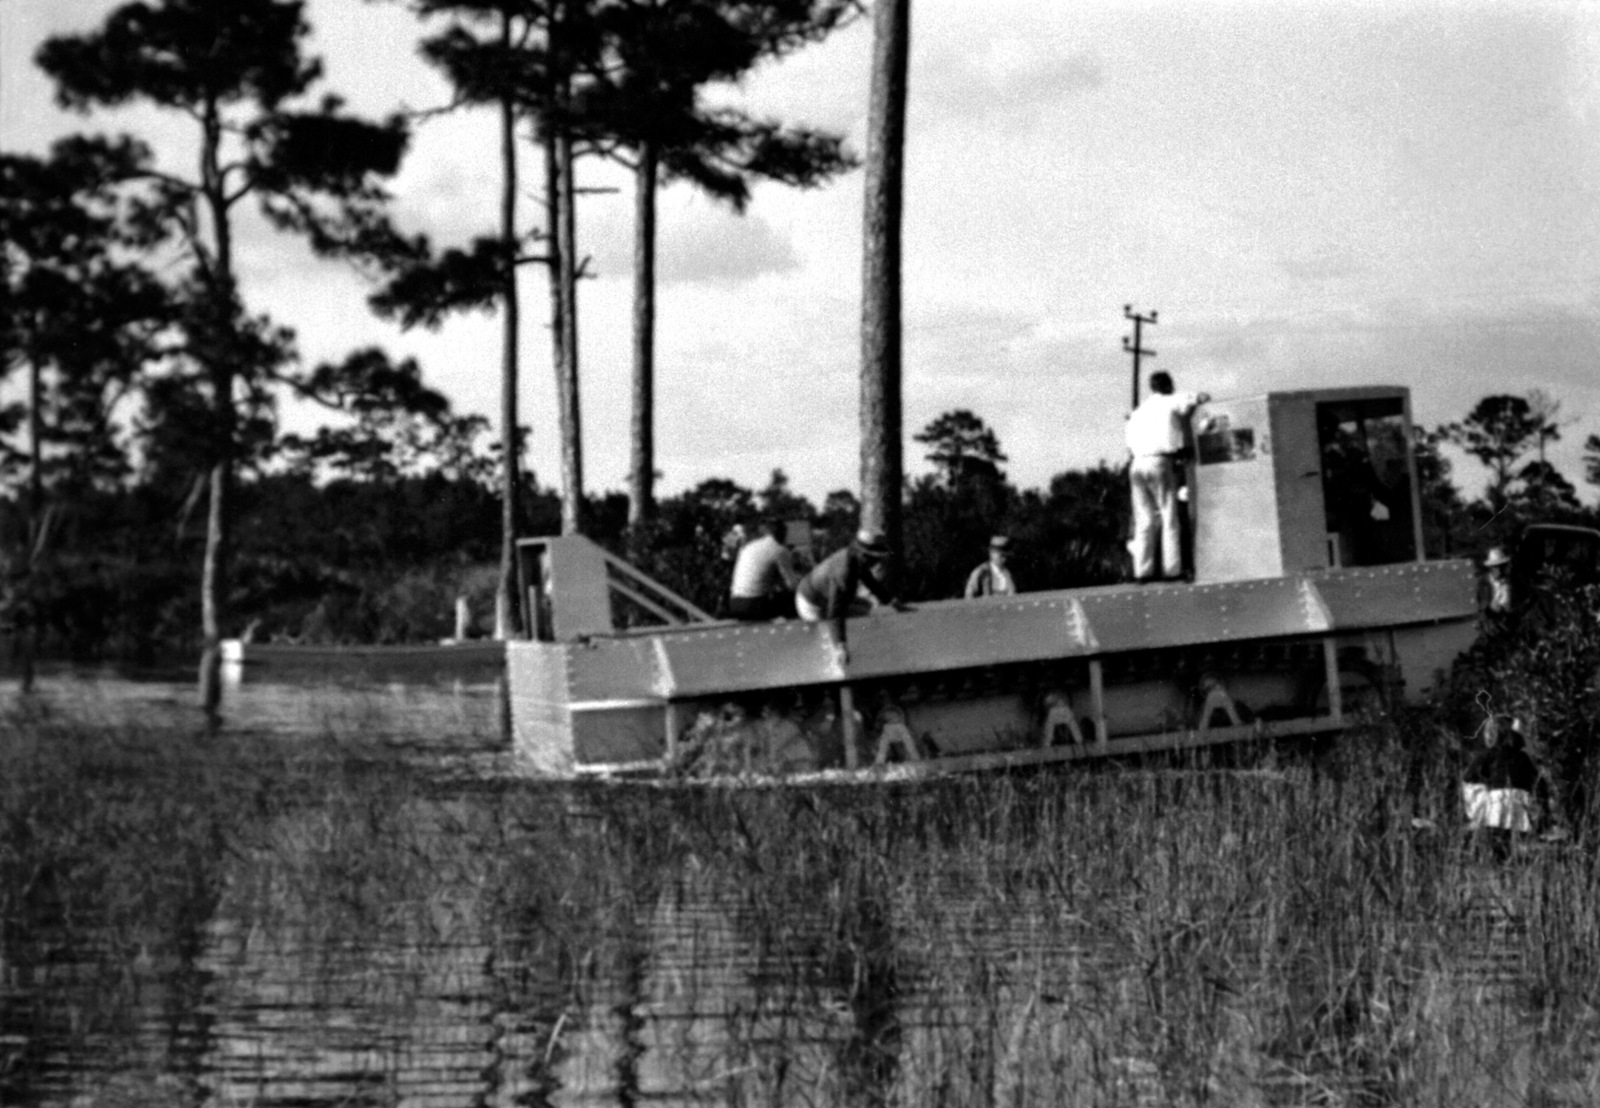 A side view of the Roebling Alligator tractor as it moves through a swampy area. The tractor is a Donald Roebling creation and is the vanguard for the present Marine LVTP-7 tracked landing vehicle